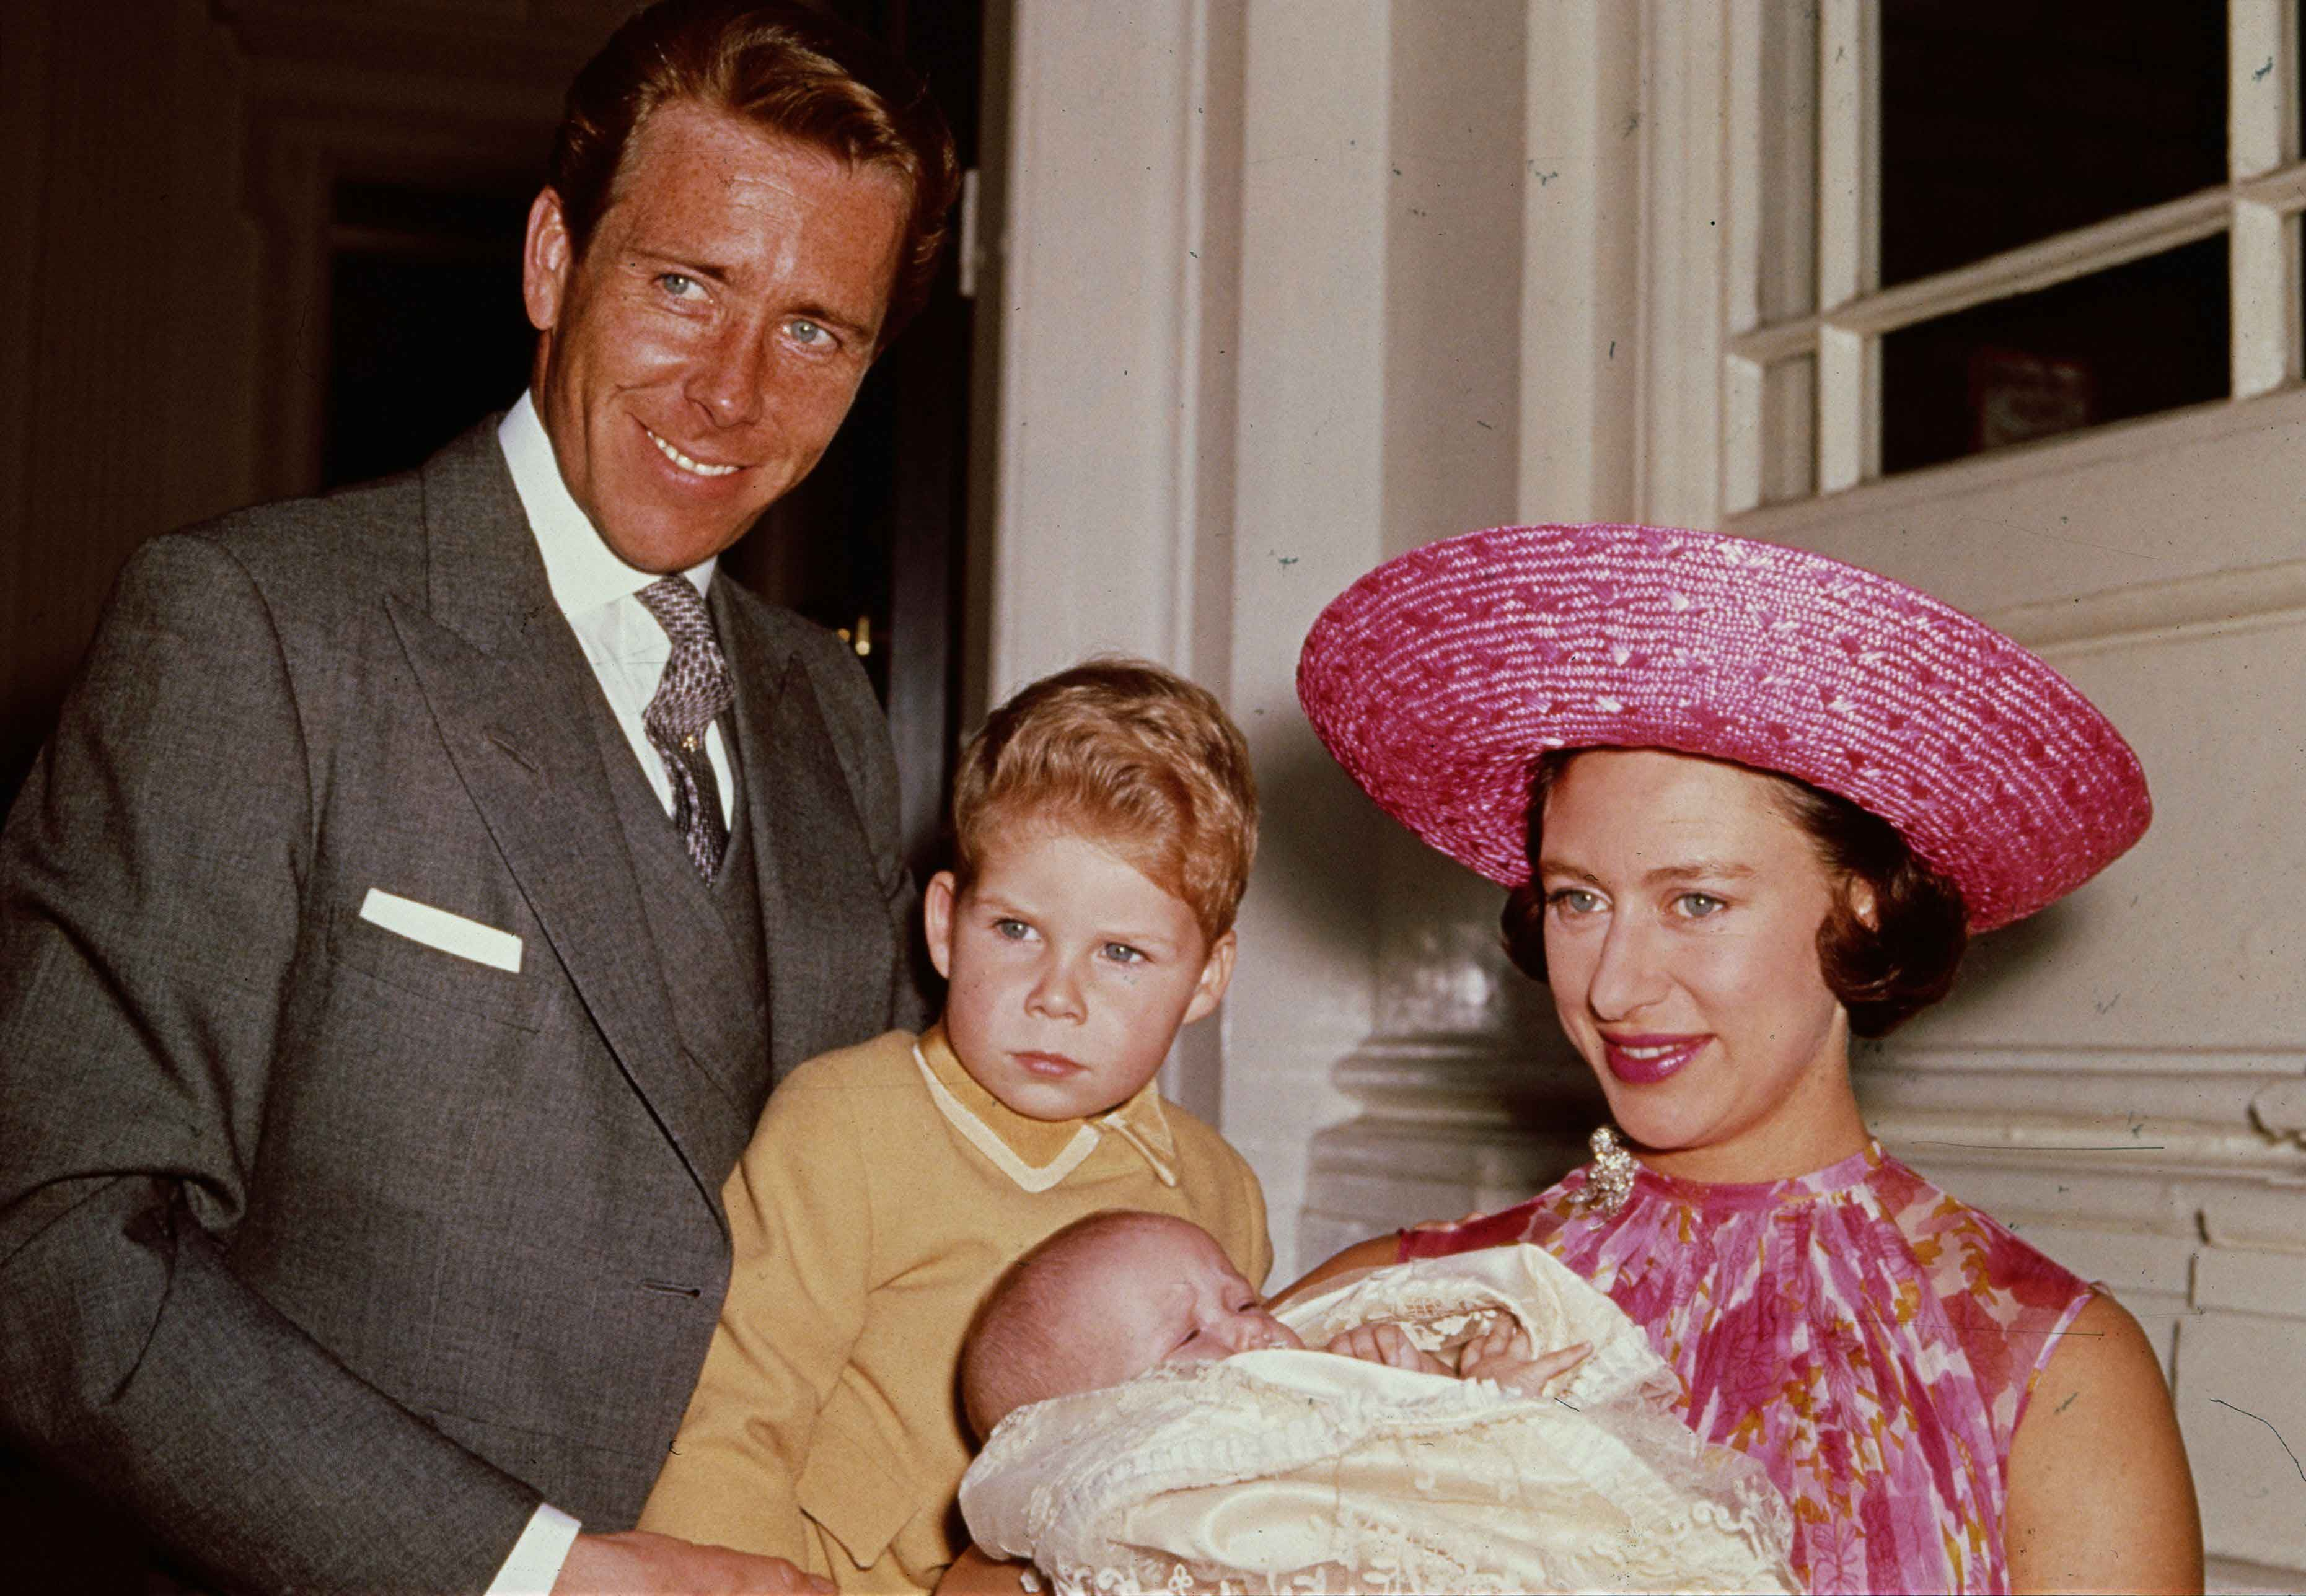 54b021457f7a0 Princess Margaret's Life In Pictures - Beautiful Photos of Queen Elizabeth's  Sister